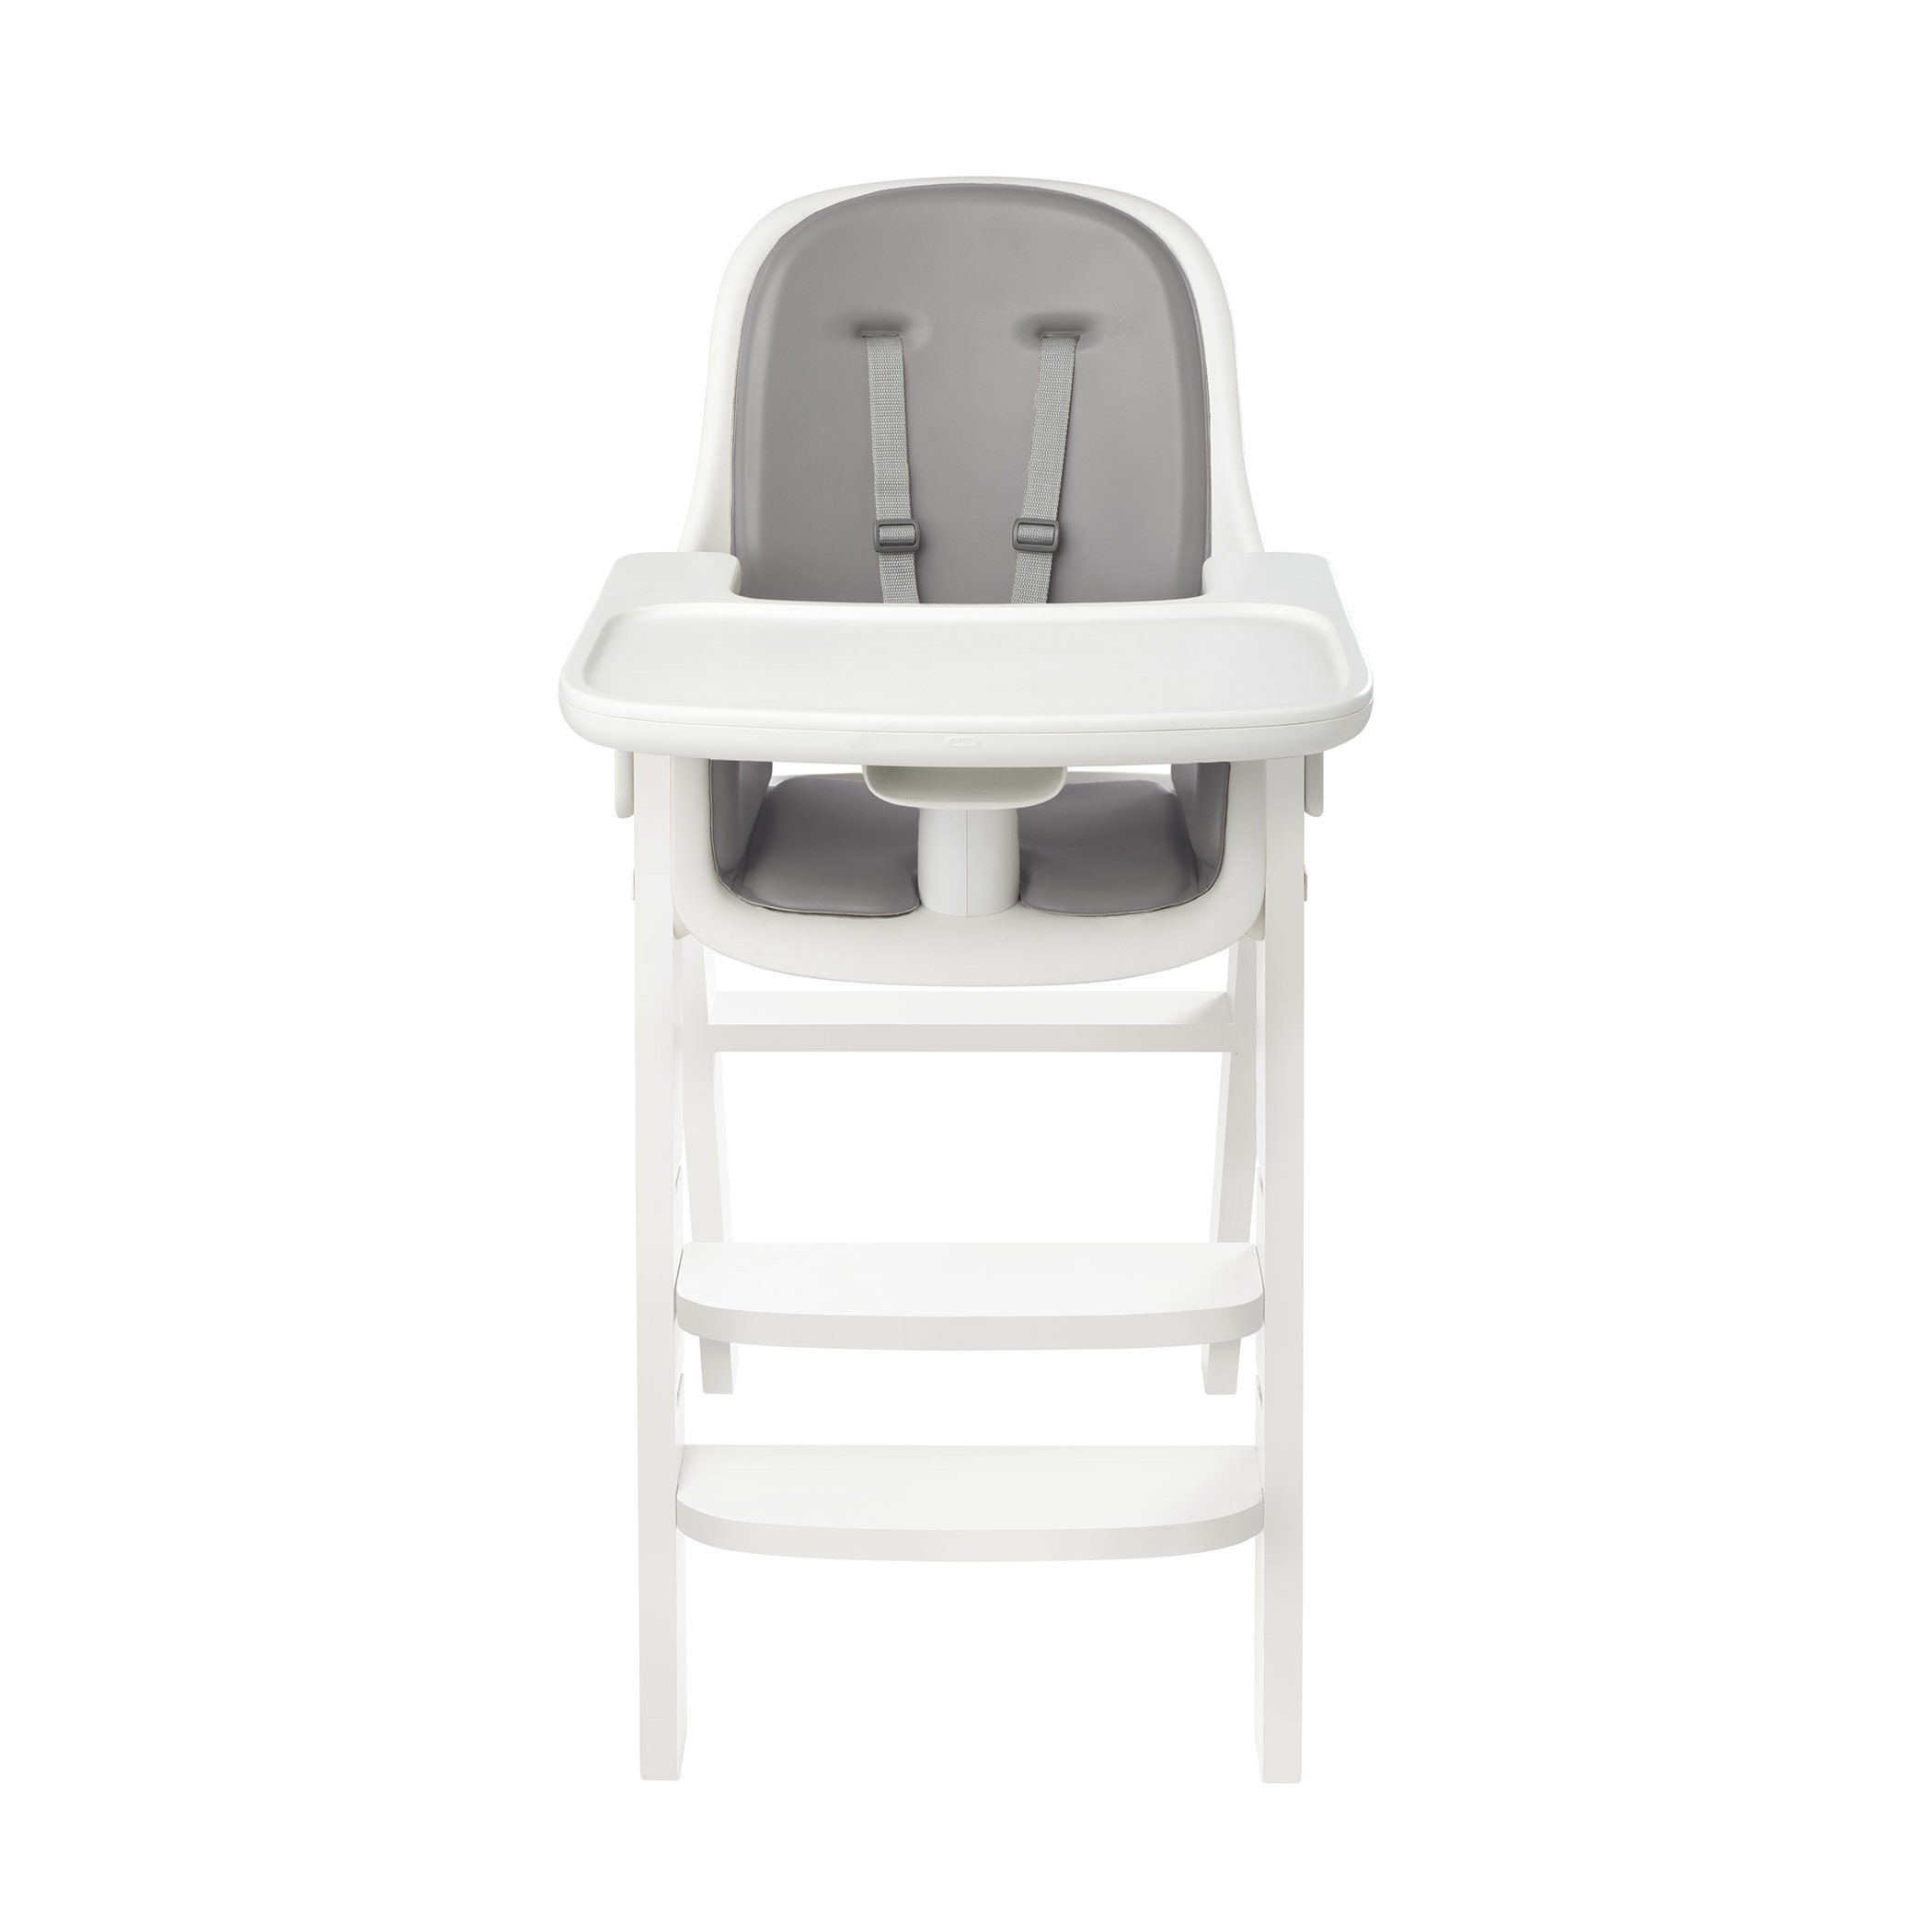 OXO Tot Sprout High Chair, Gray/White